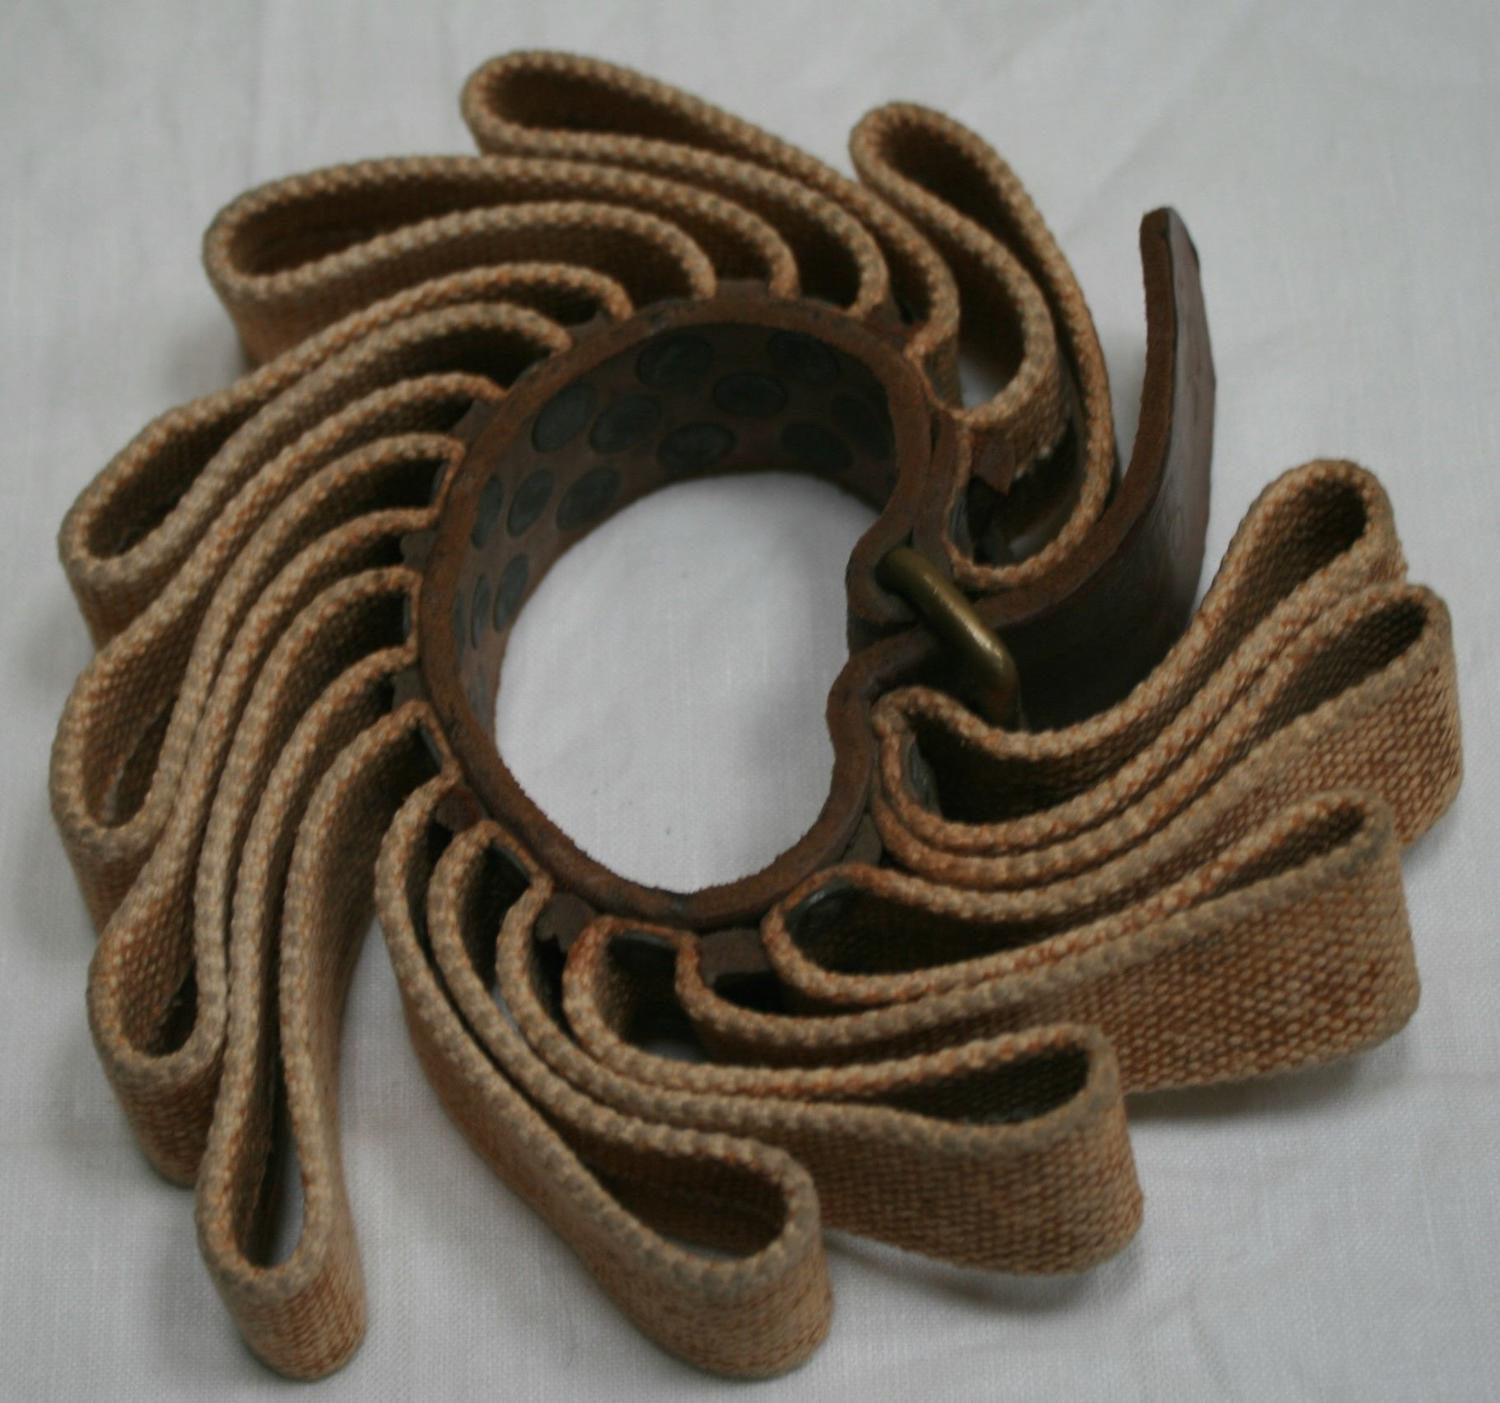 A 1940 DATED TENT POLE RIFLE RING